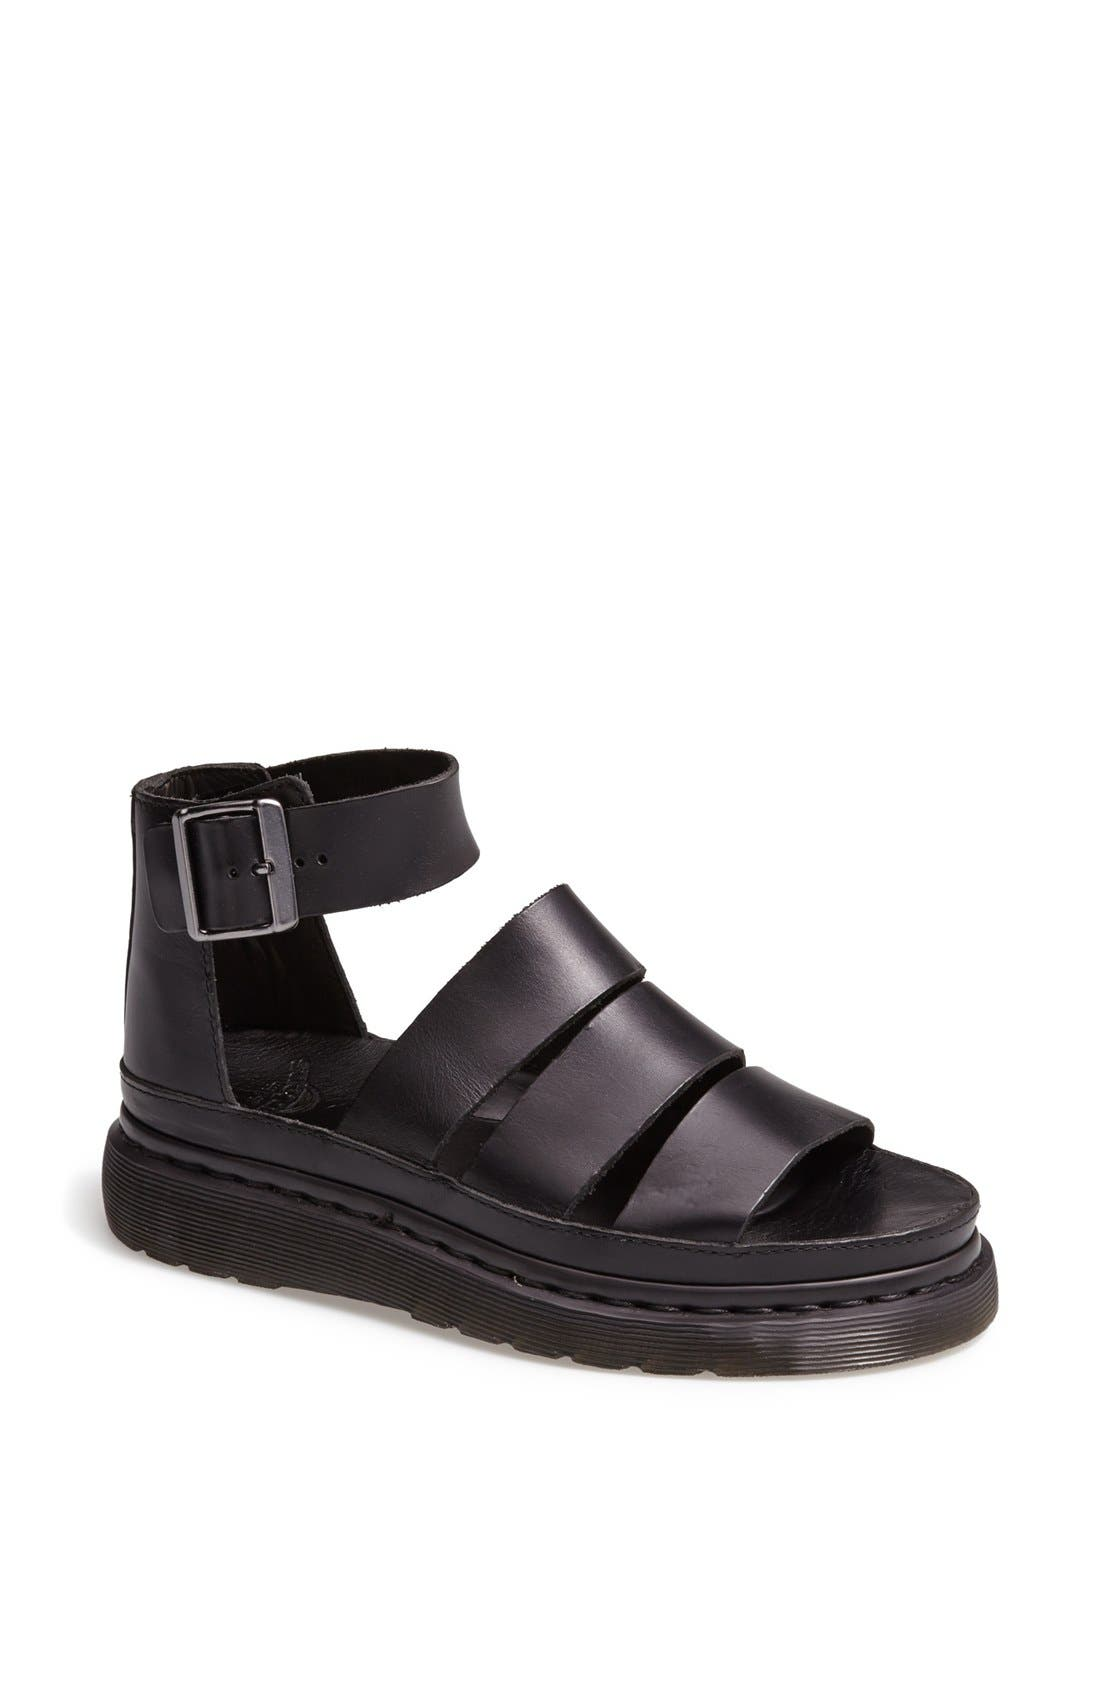 Main Image - Dr. Martens 'Clarissa' Leather Sandal